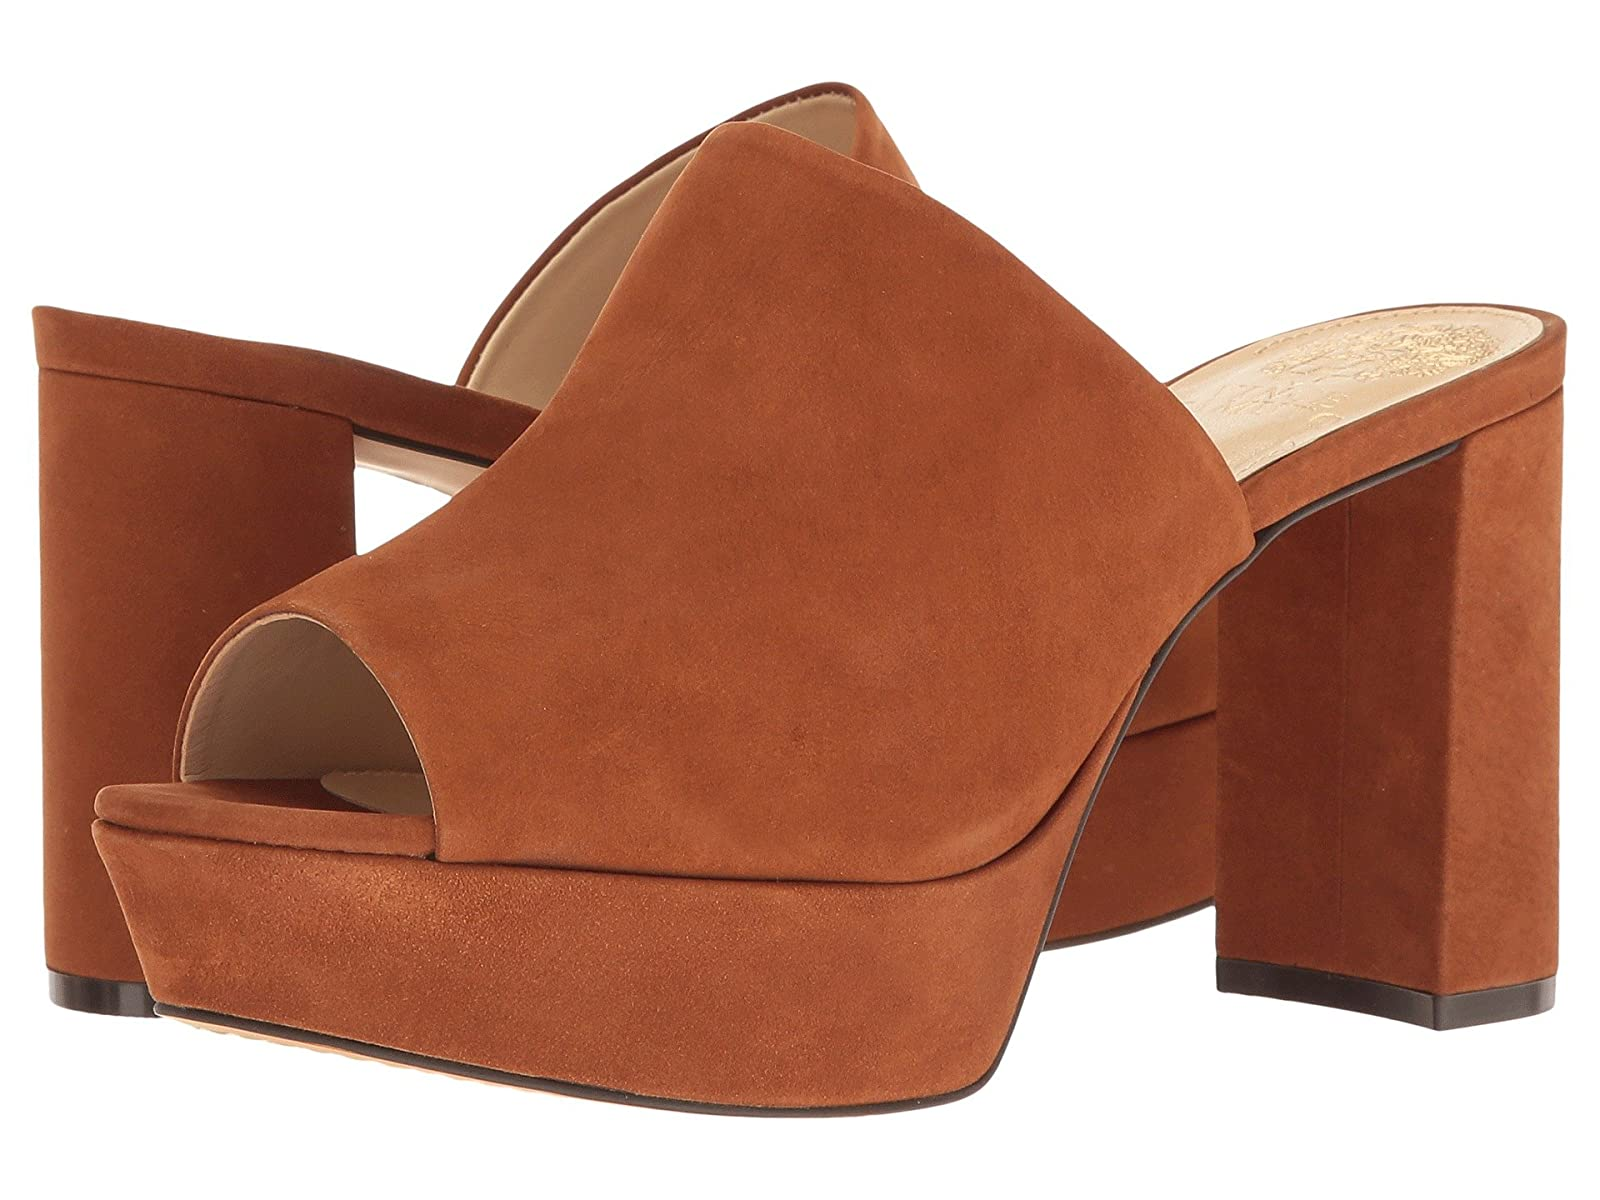 Vince Camuto BasiliaCheap and distinctive eye-catching shoes